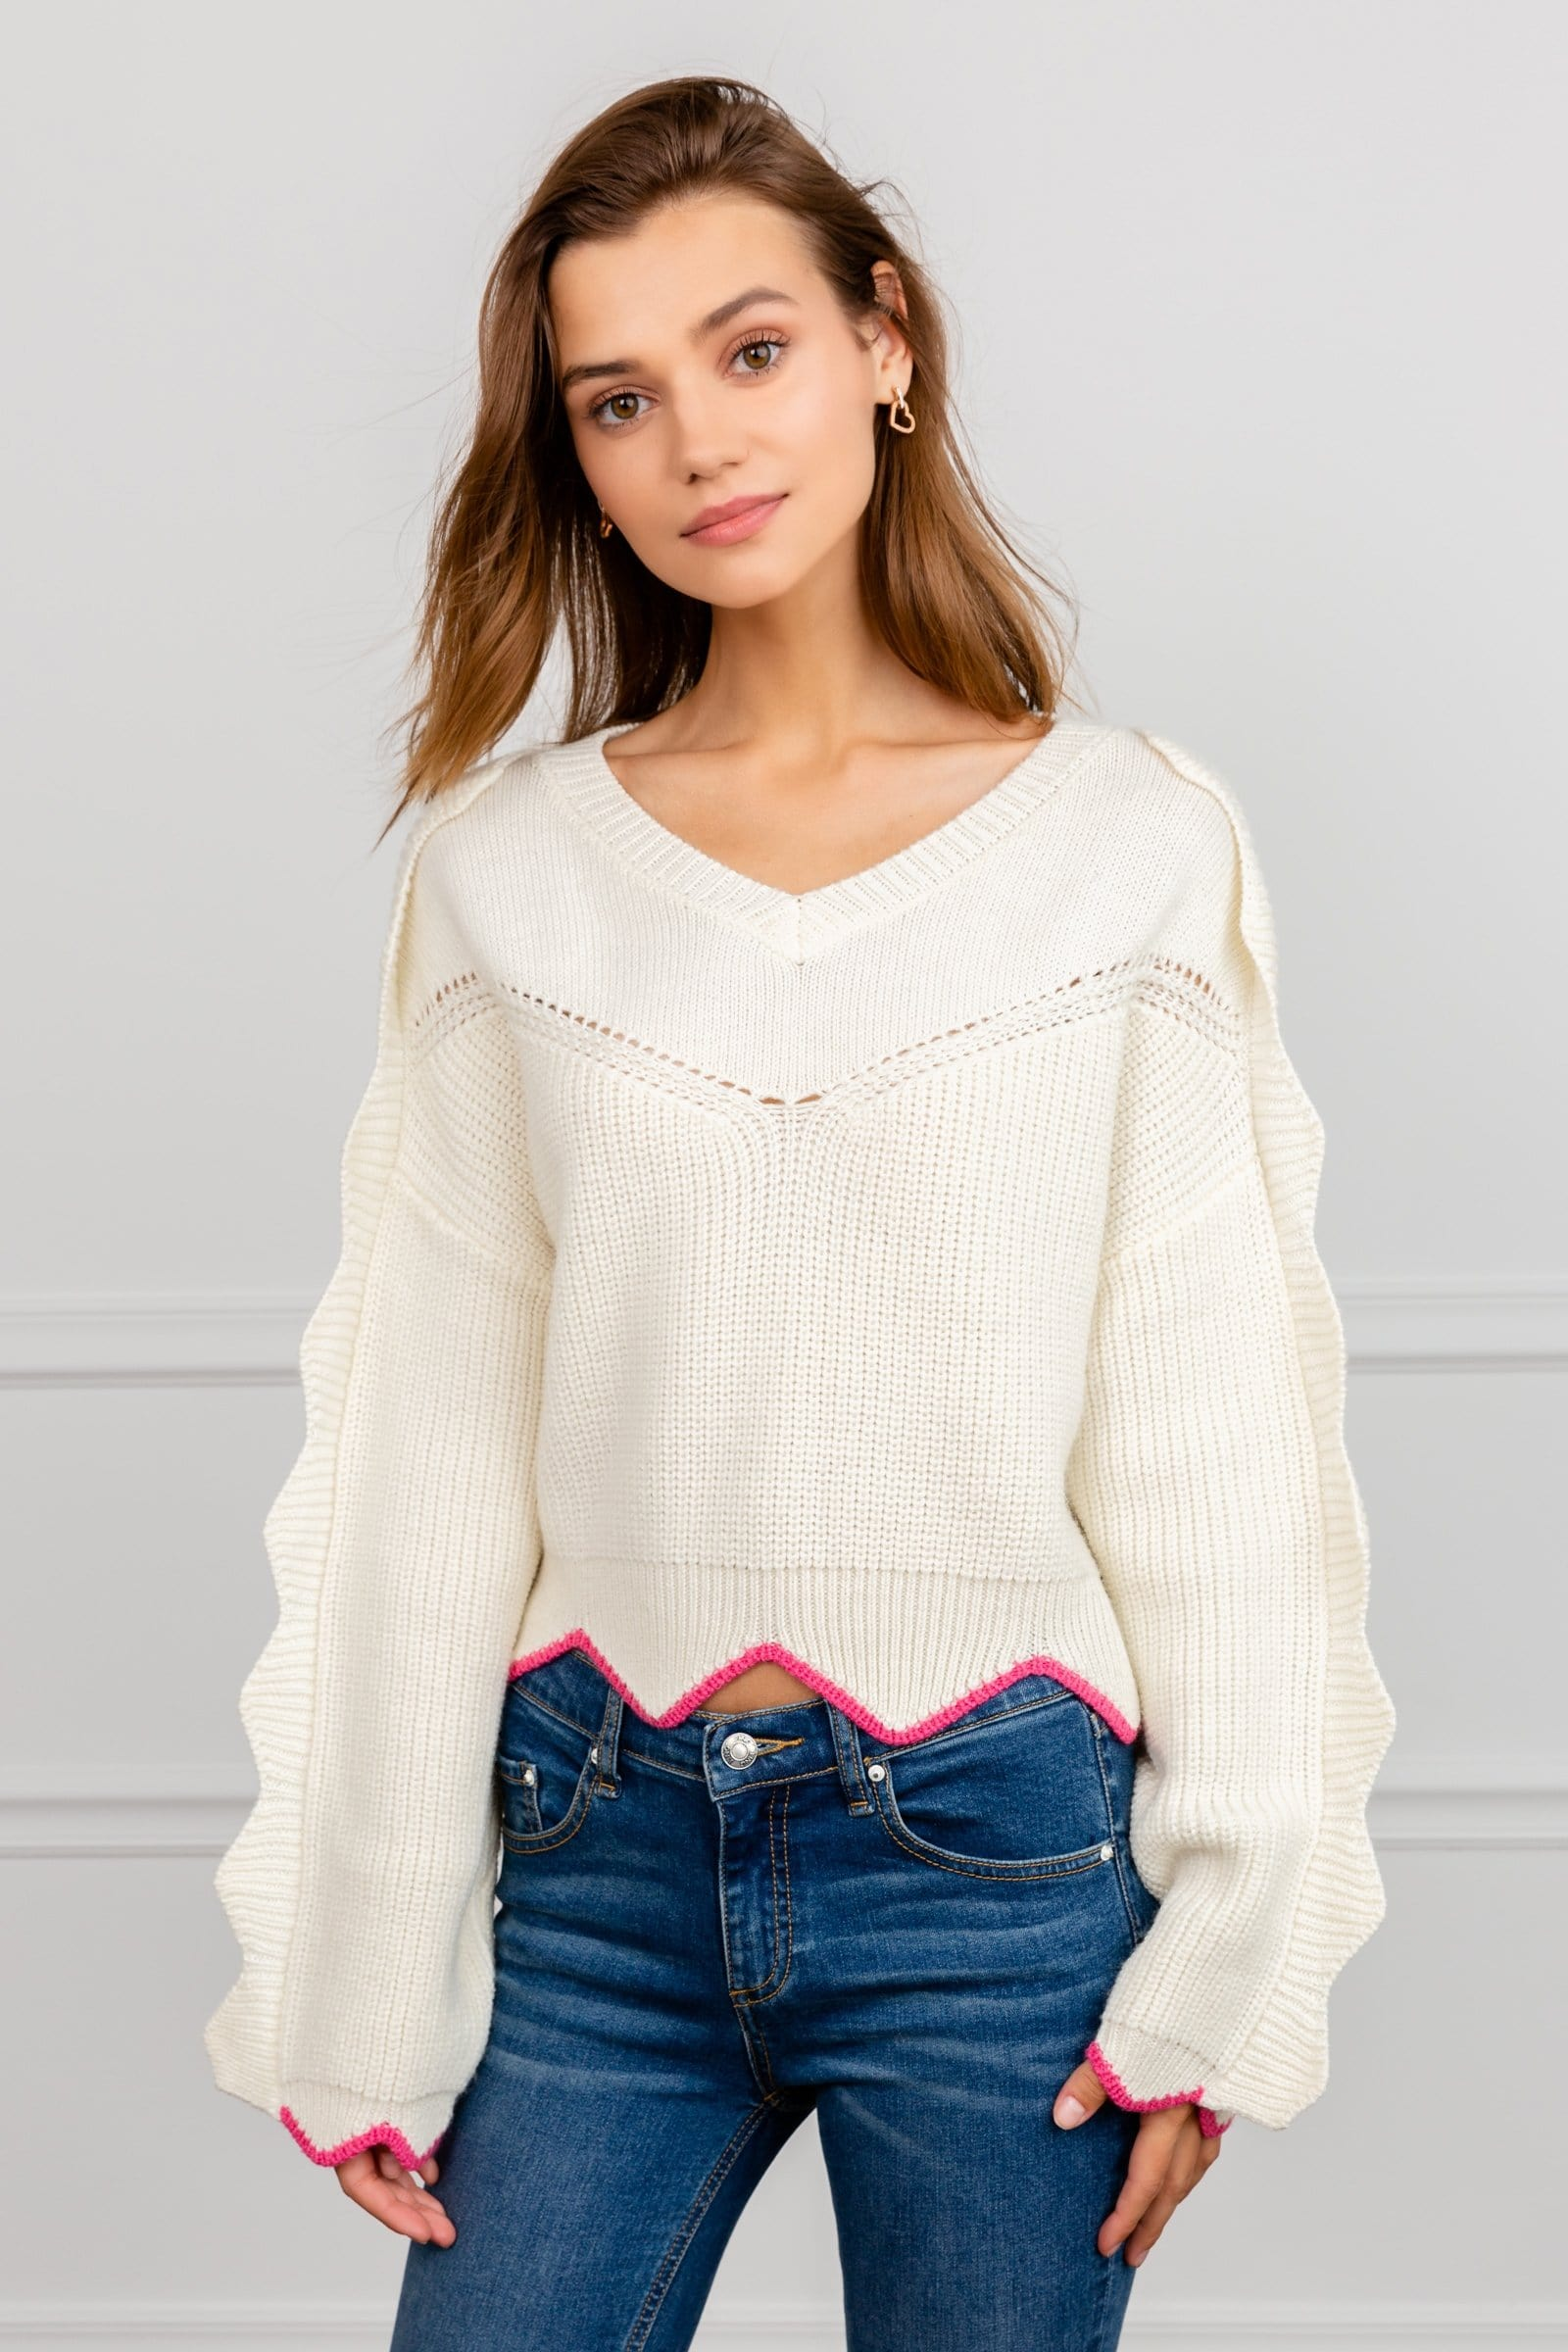 White V-Neck Rib Knit Sweater with Scalloped Pink Hemline & Sleeves | J.ING Women's Knitwear